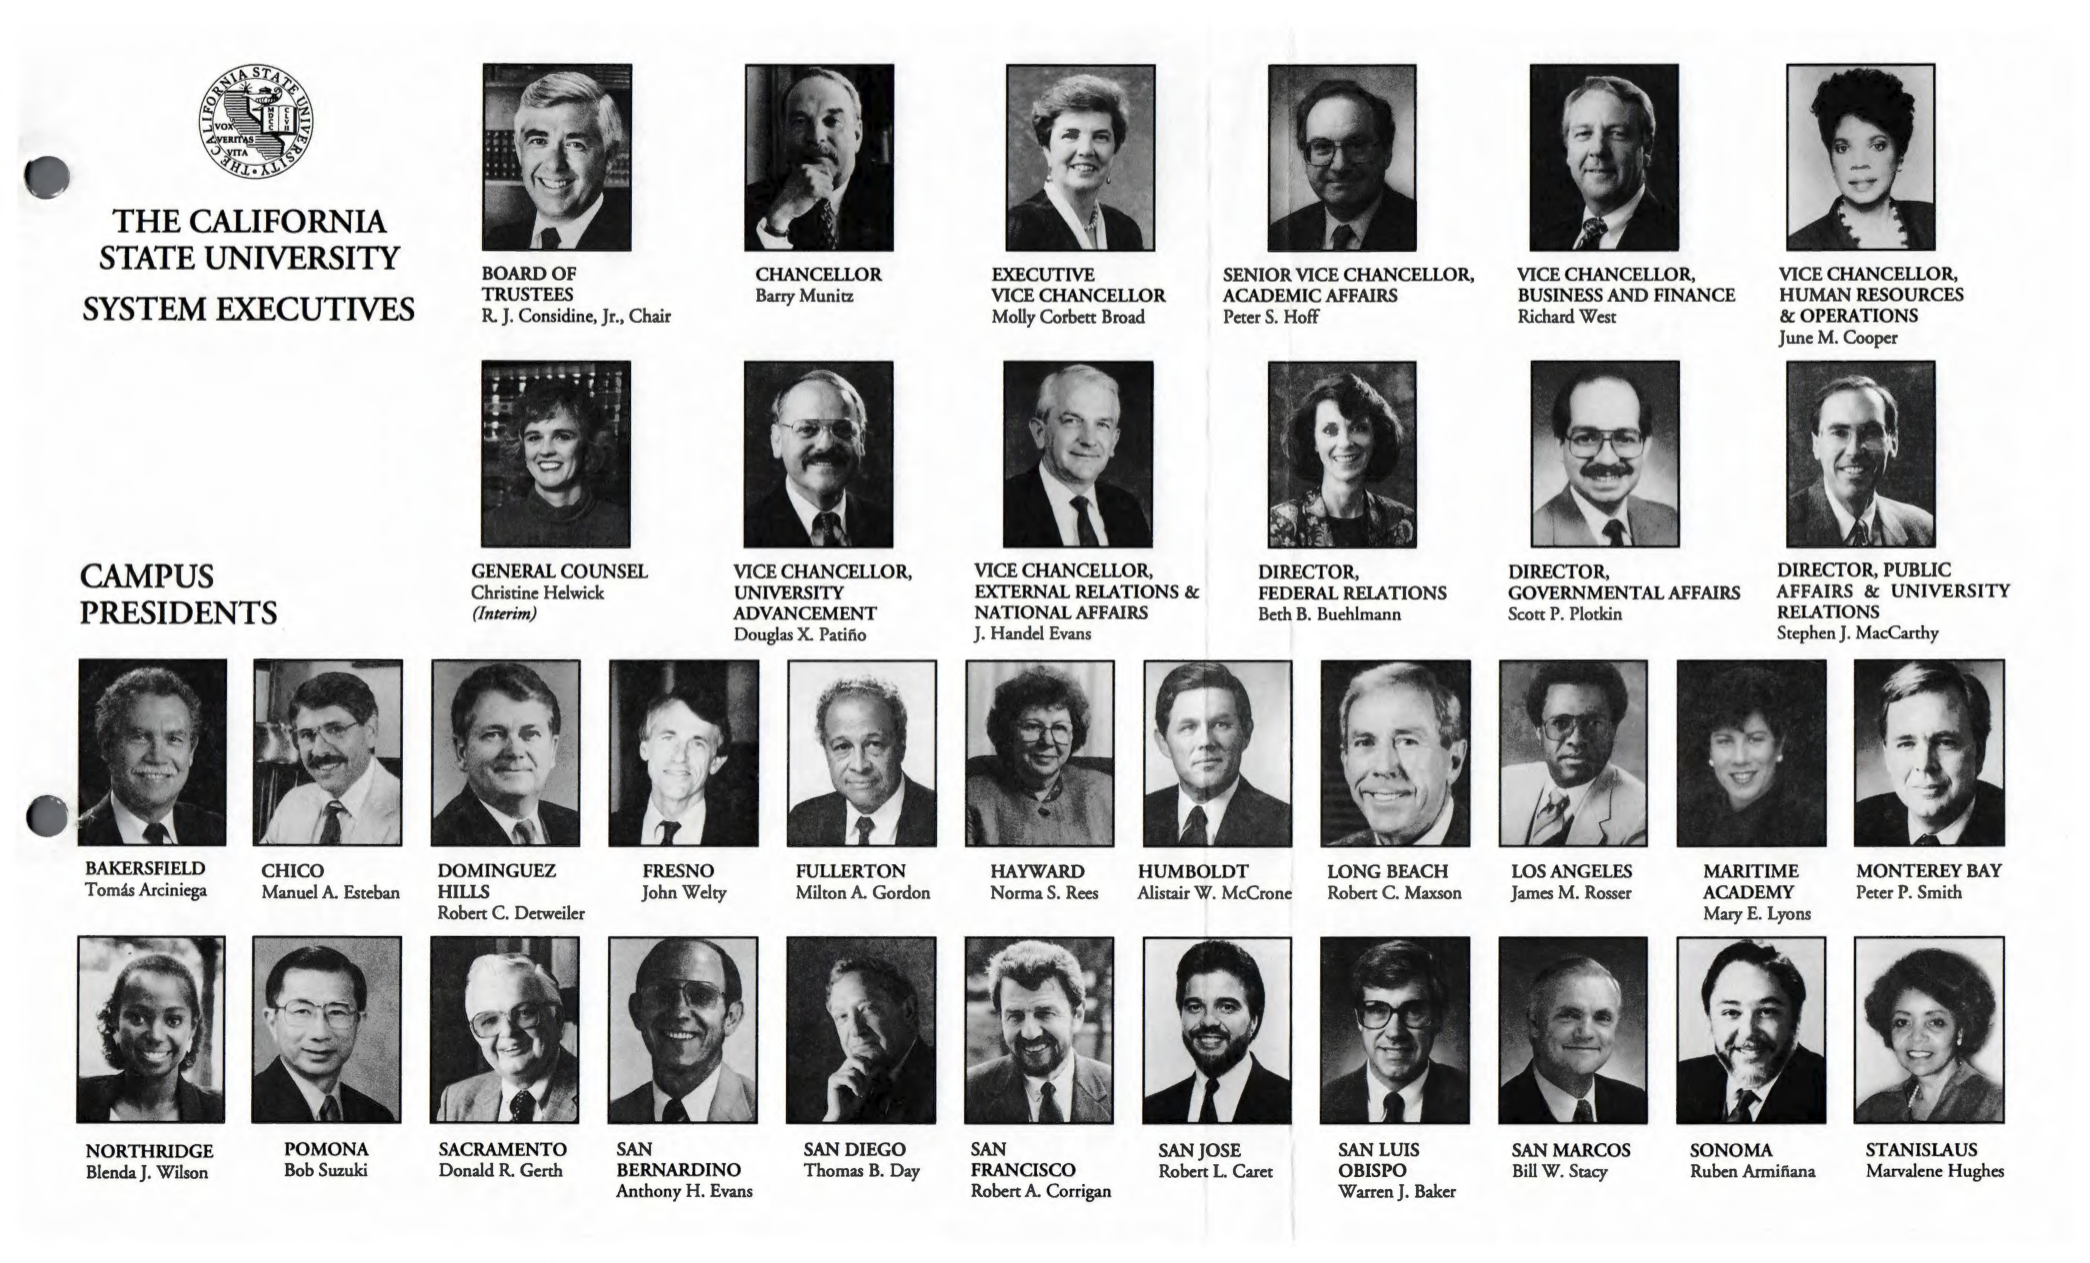 The California State University System Executives Portraits